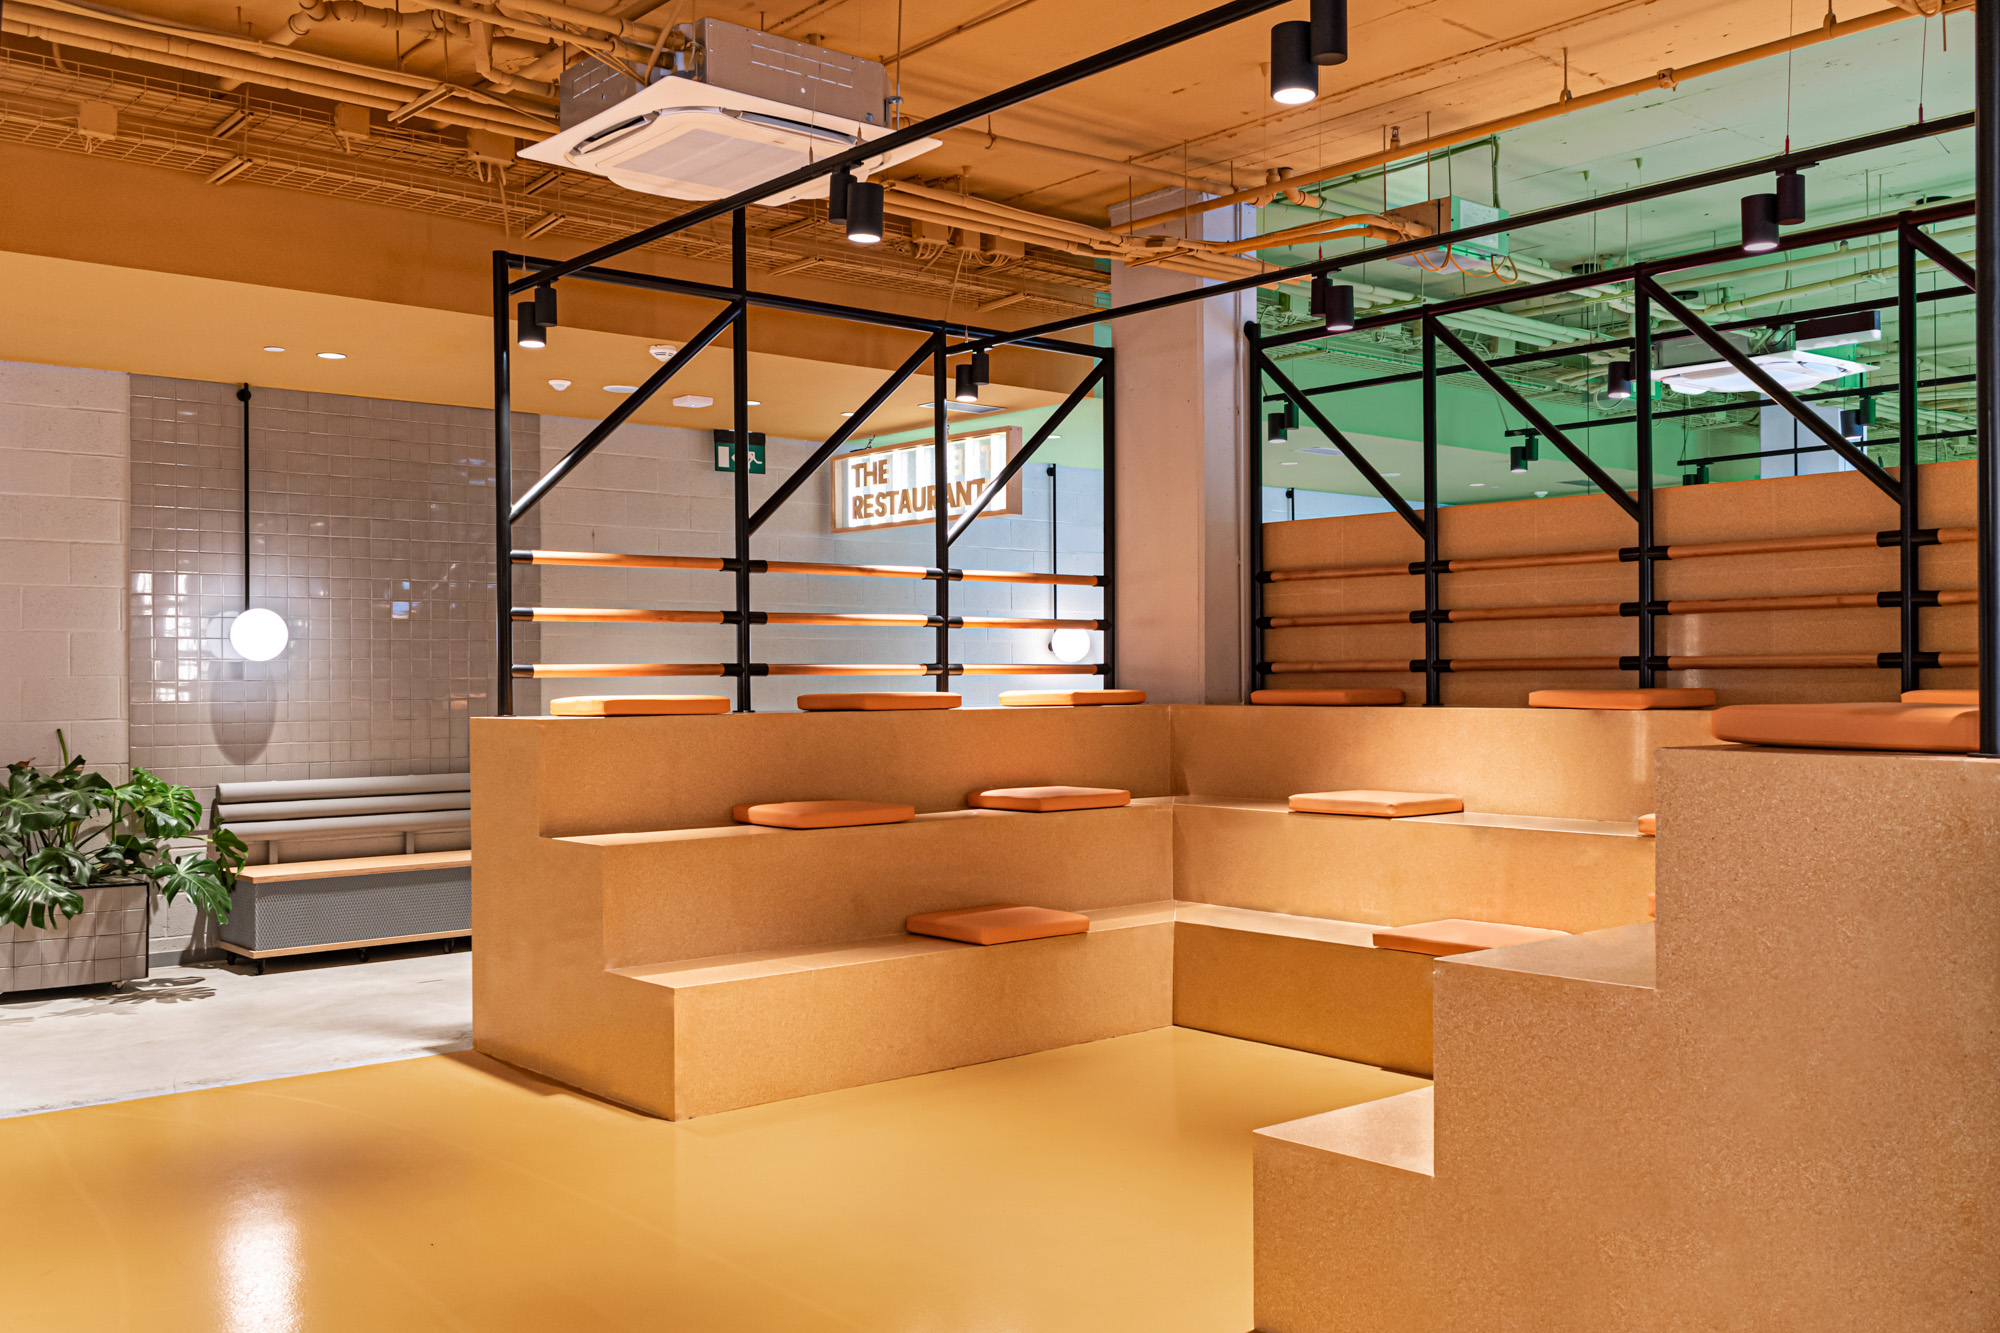 Yellow frames amphitheatre style seating by Masquespacio